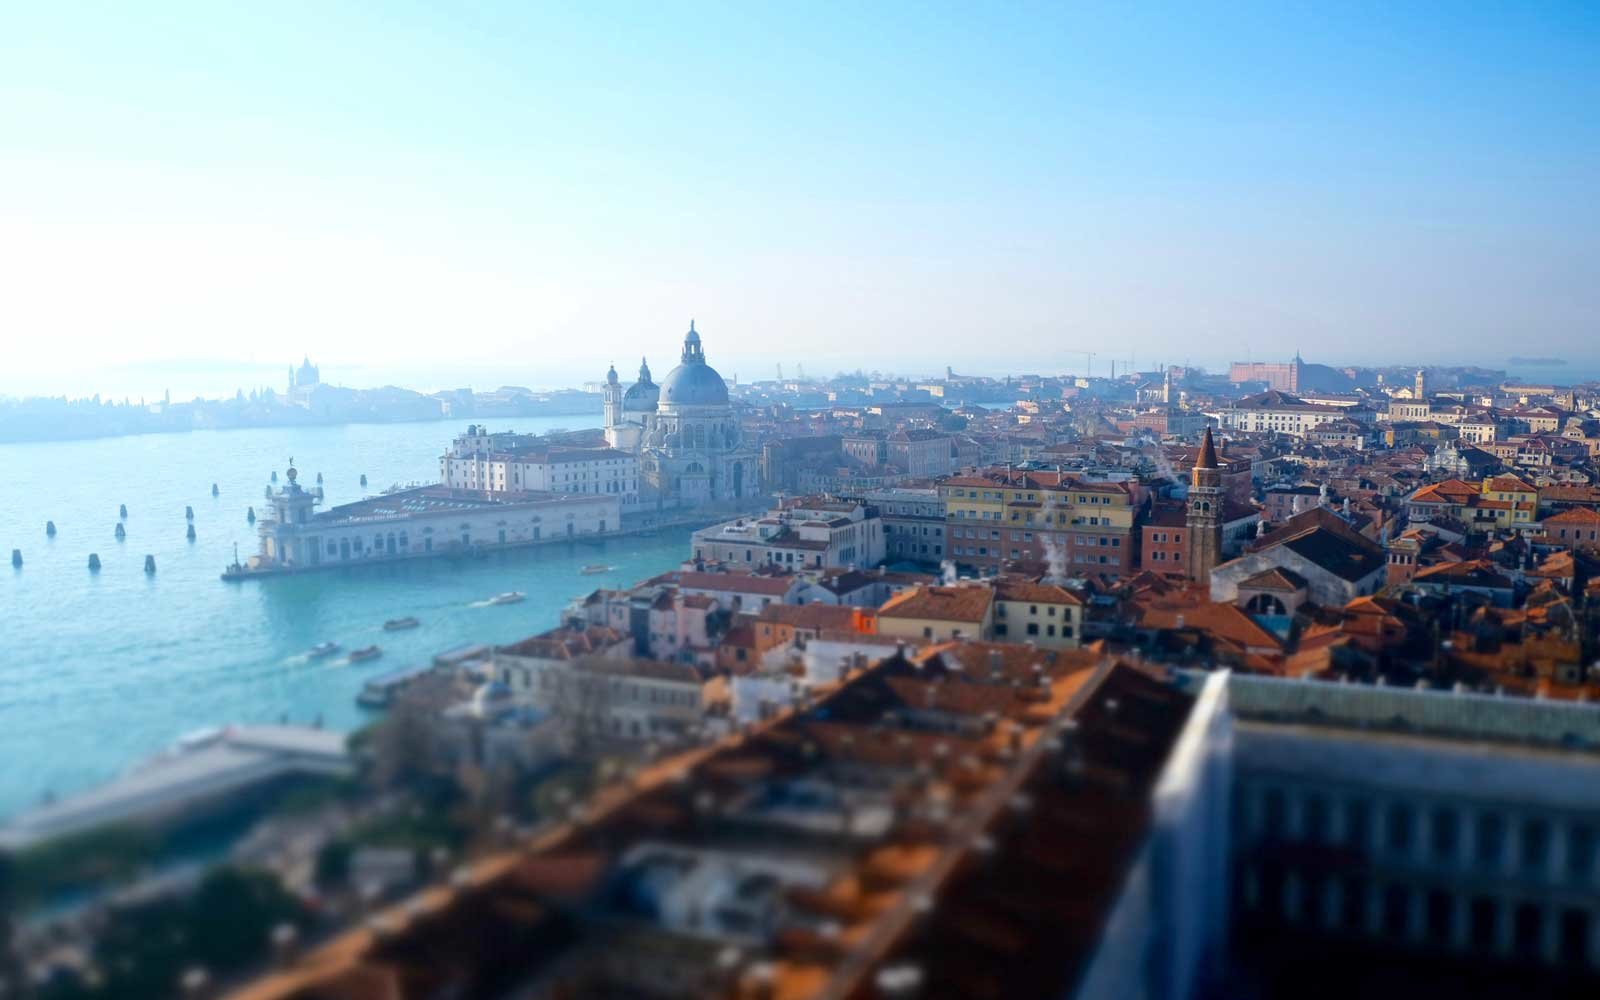 Views of Venice and Grand Canal, Venice, Veneto, Italy